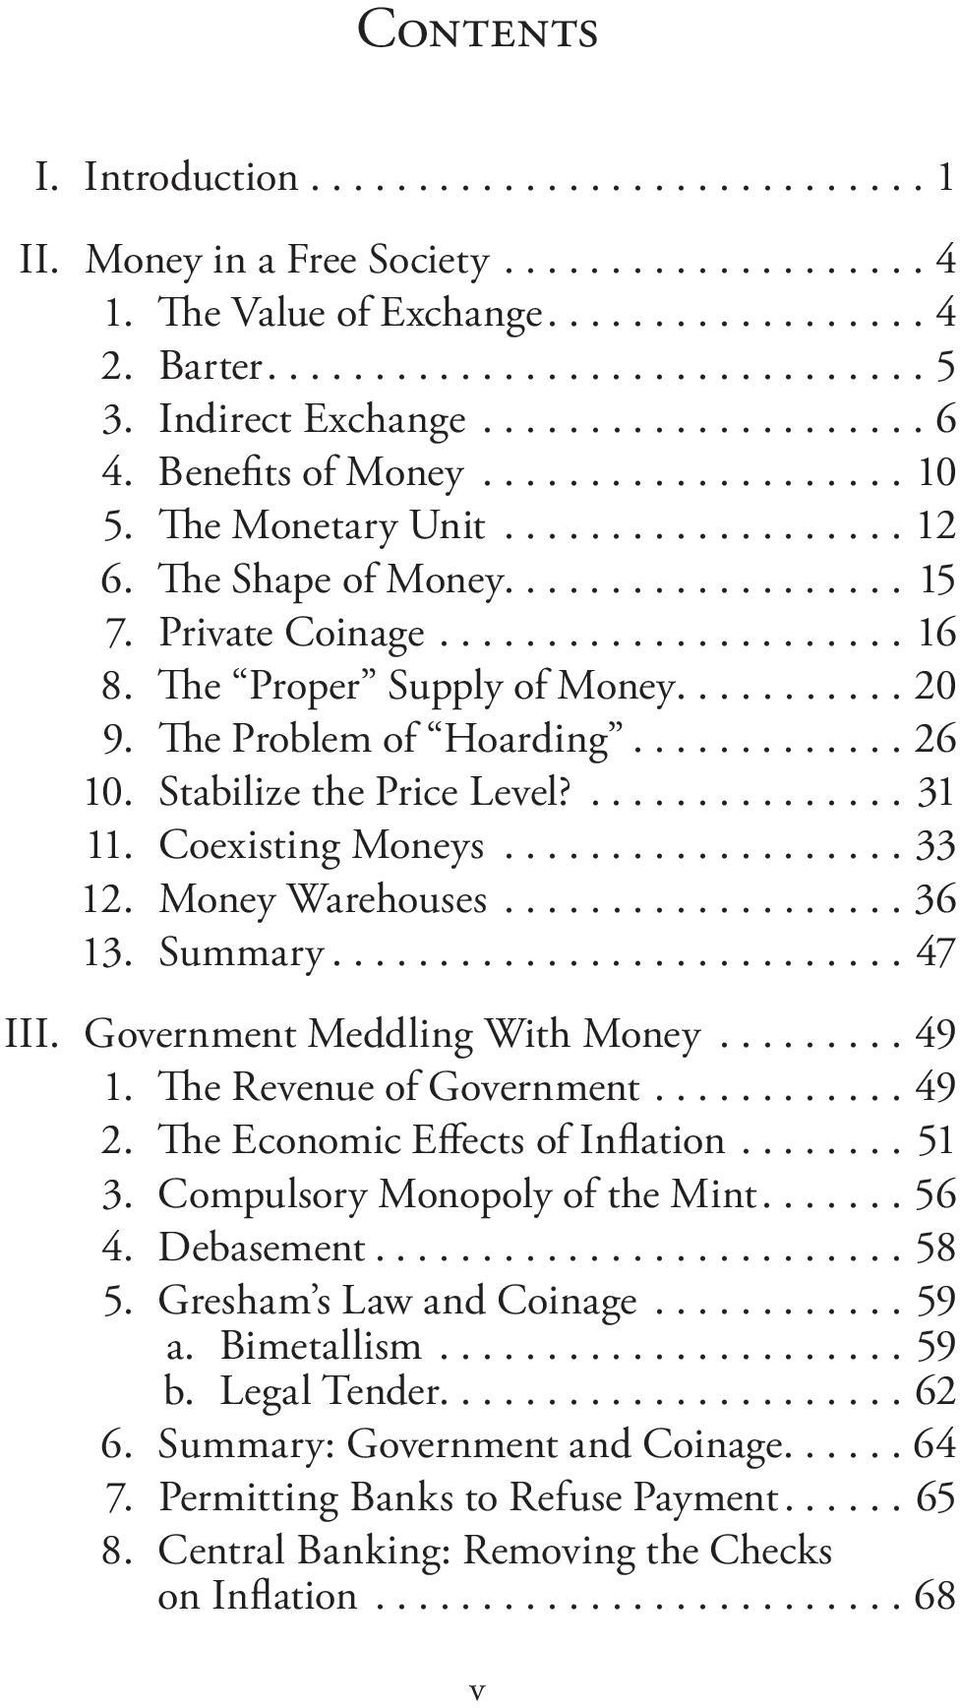 The Proper Supply of Money........... 20 9. The Problem of Hoarding............. 26 10. Stabilize the Price Level?............... 31 11. Coexisting Moneys................... 33 12. Money Warehouses.